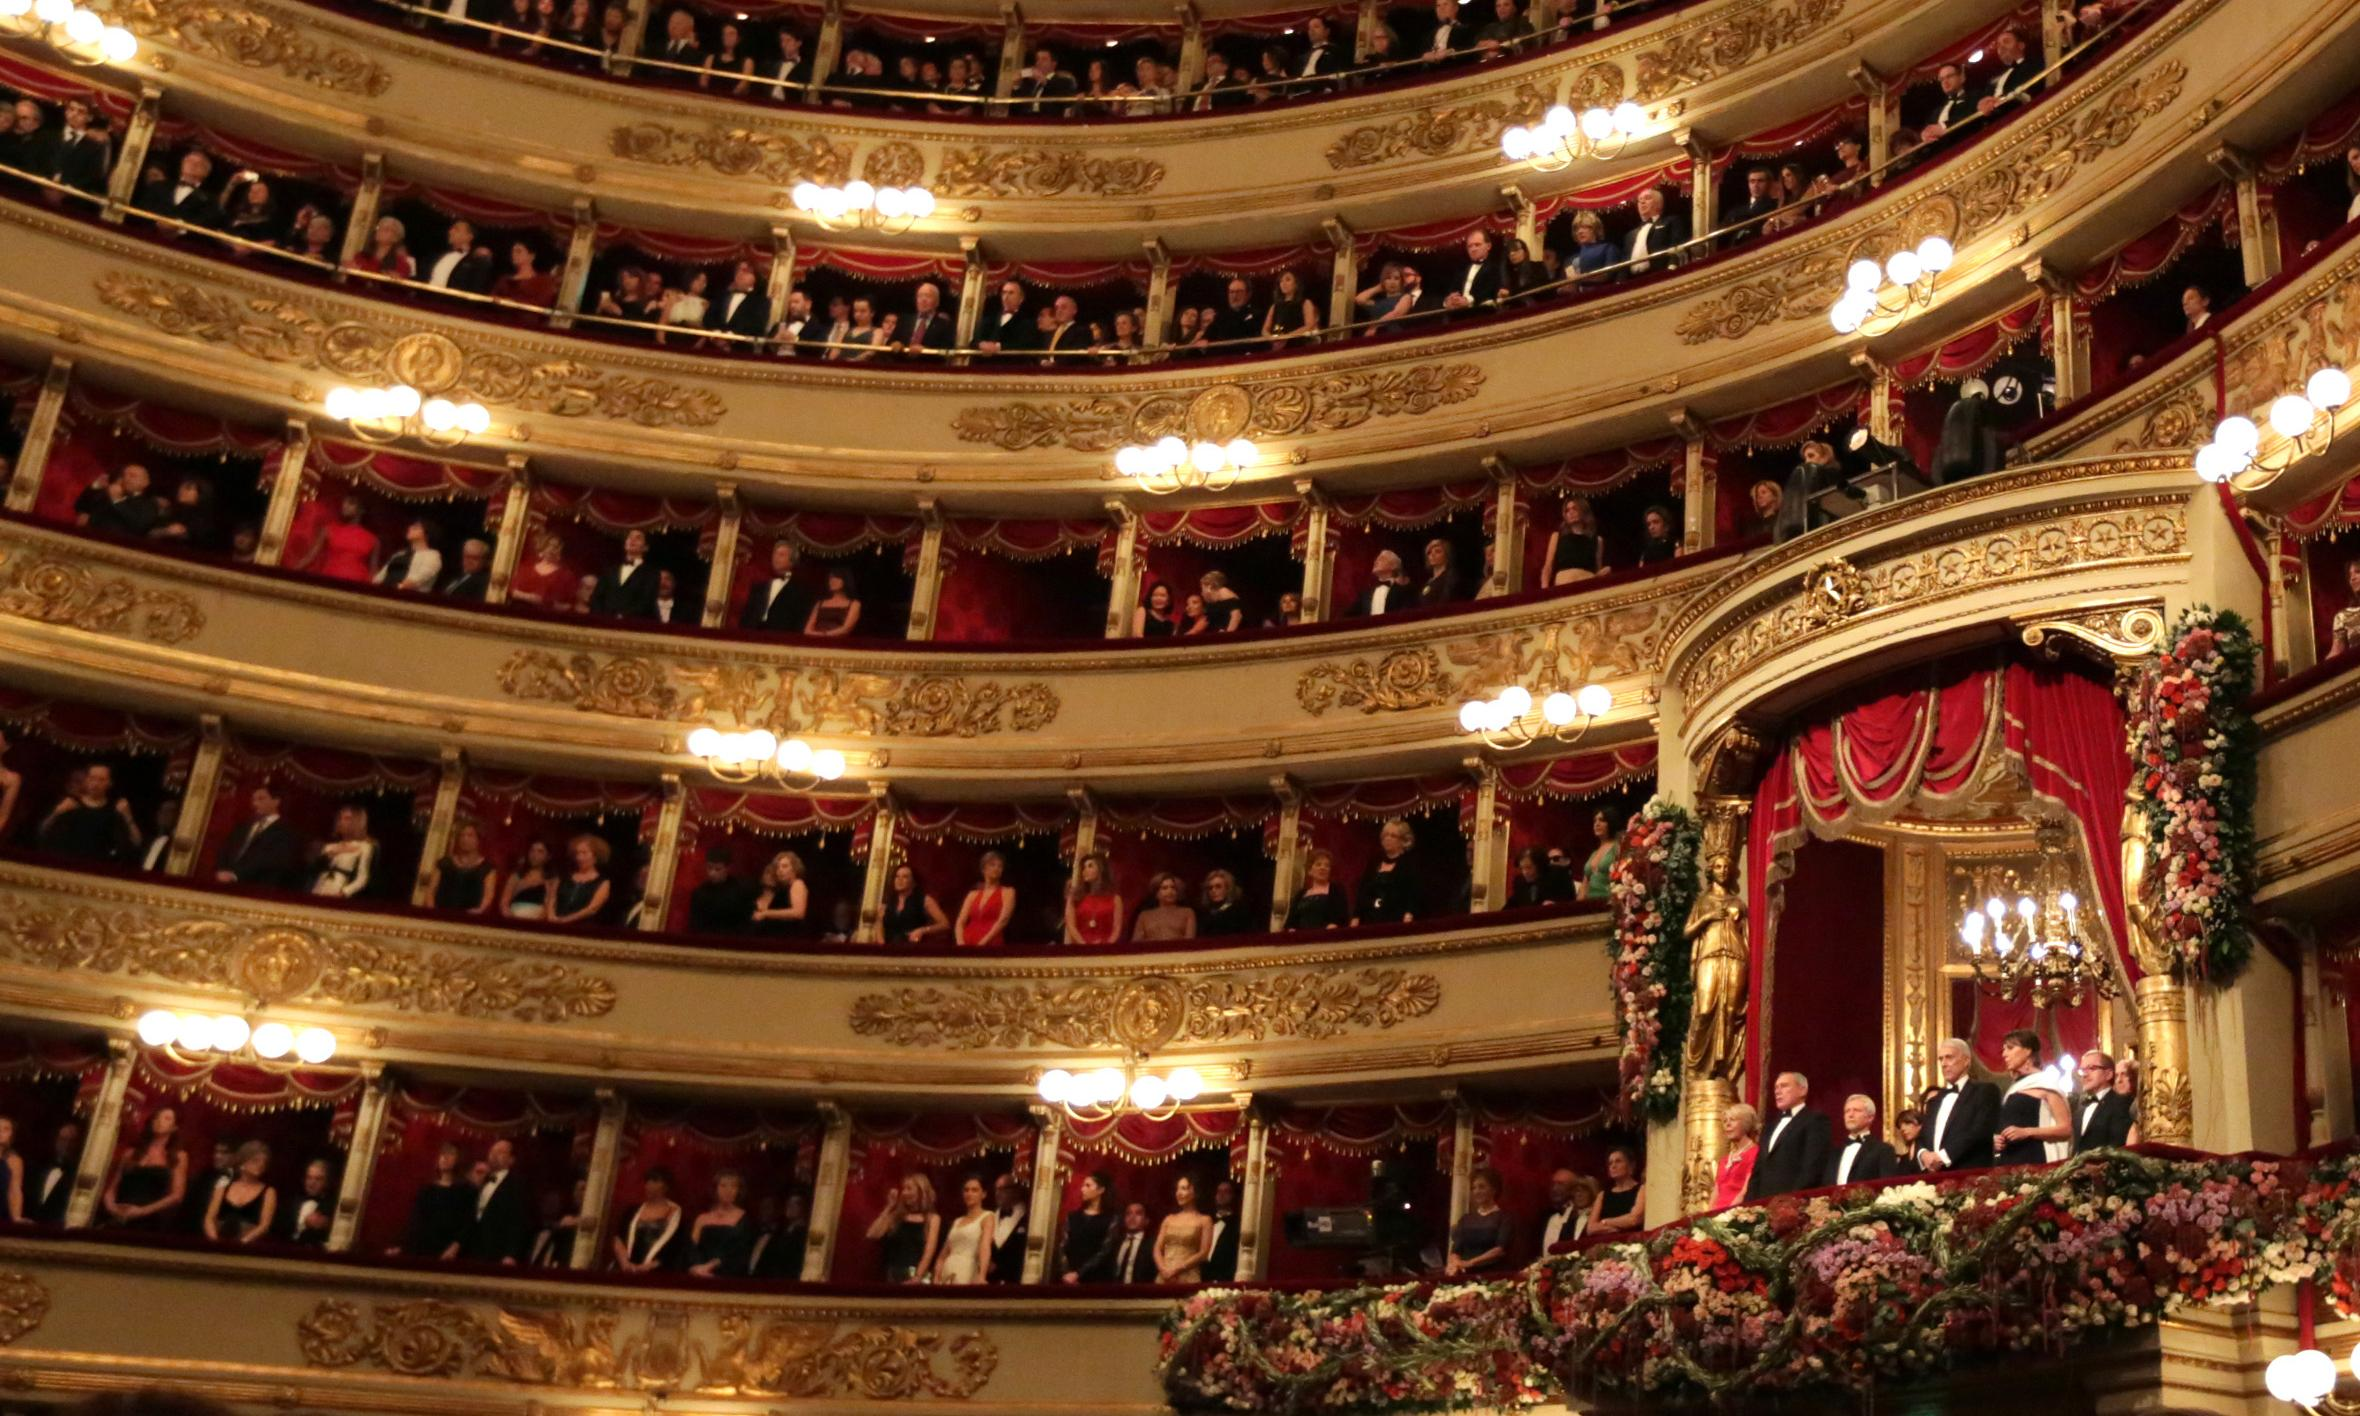 La Scala criticised over plan to make Saudi minister board member